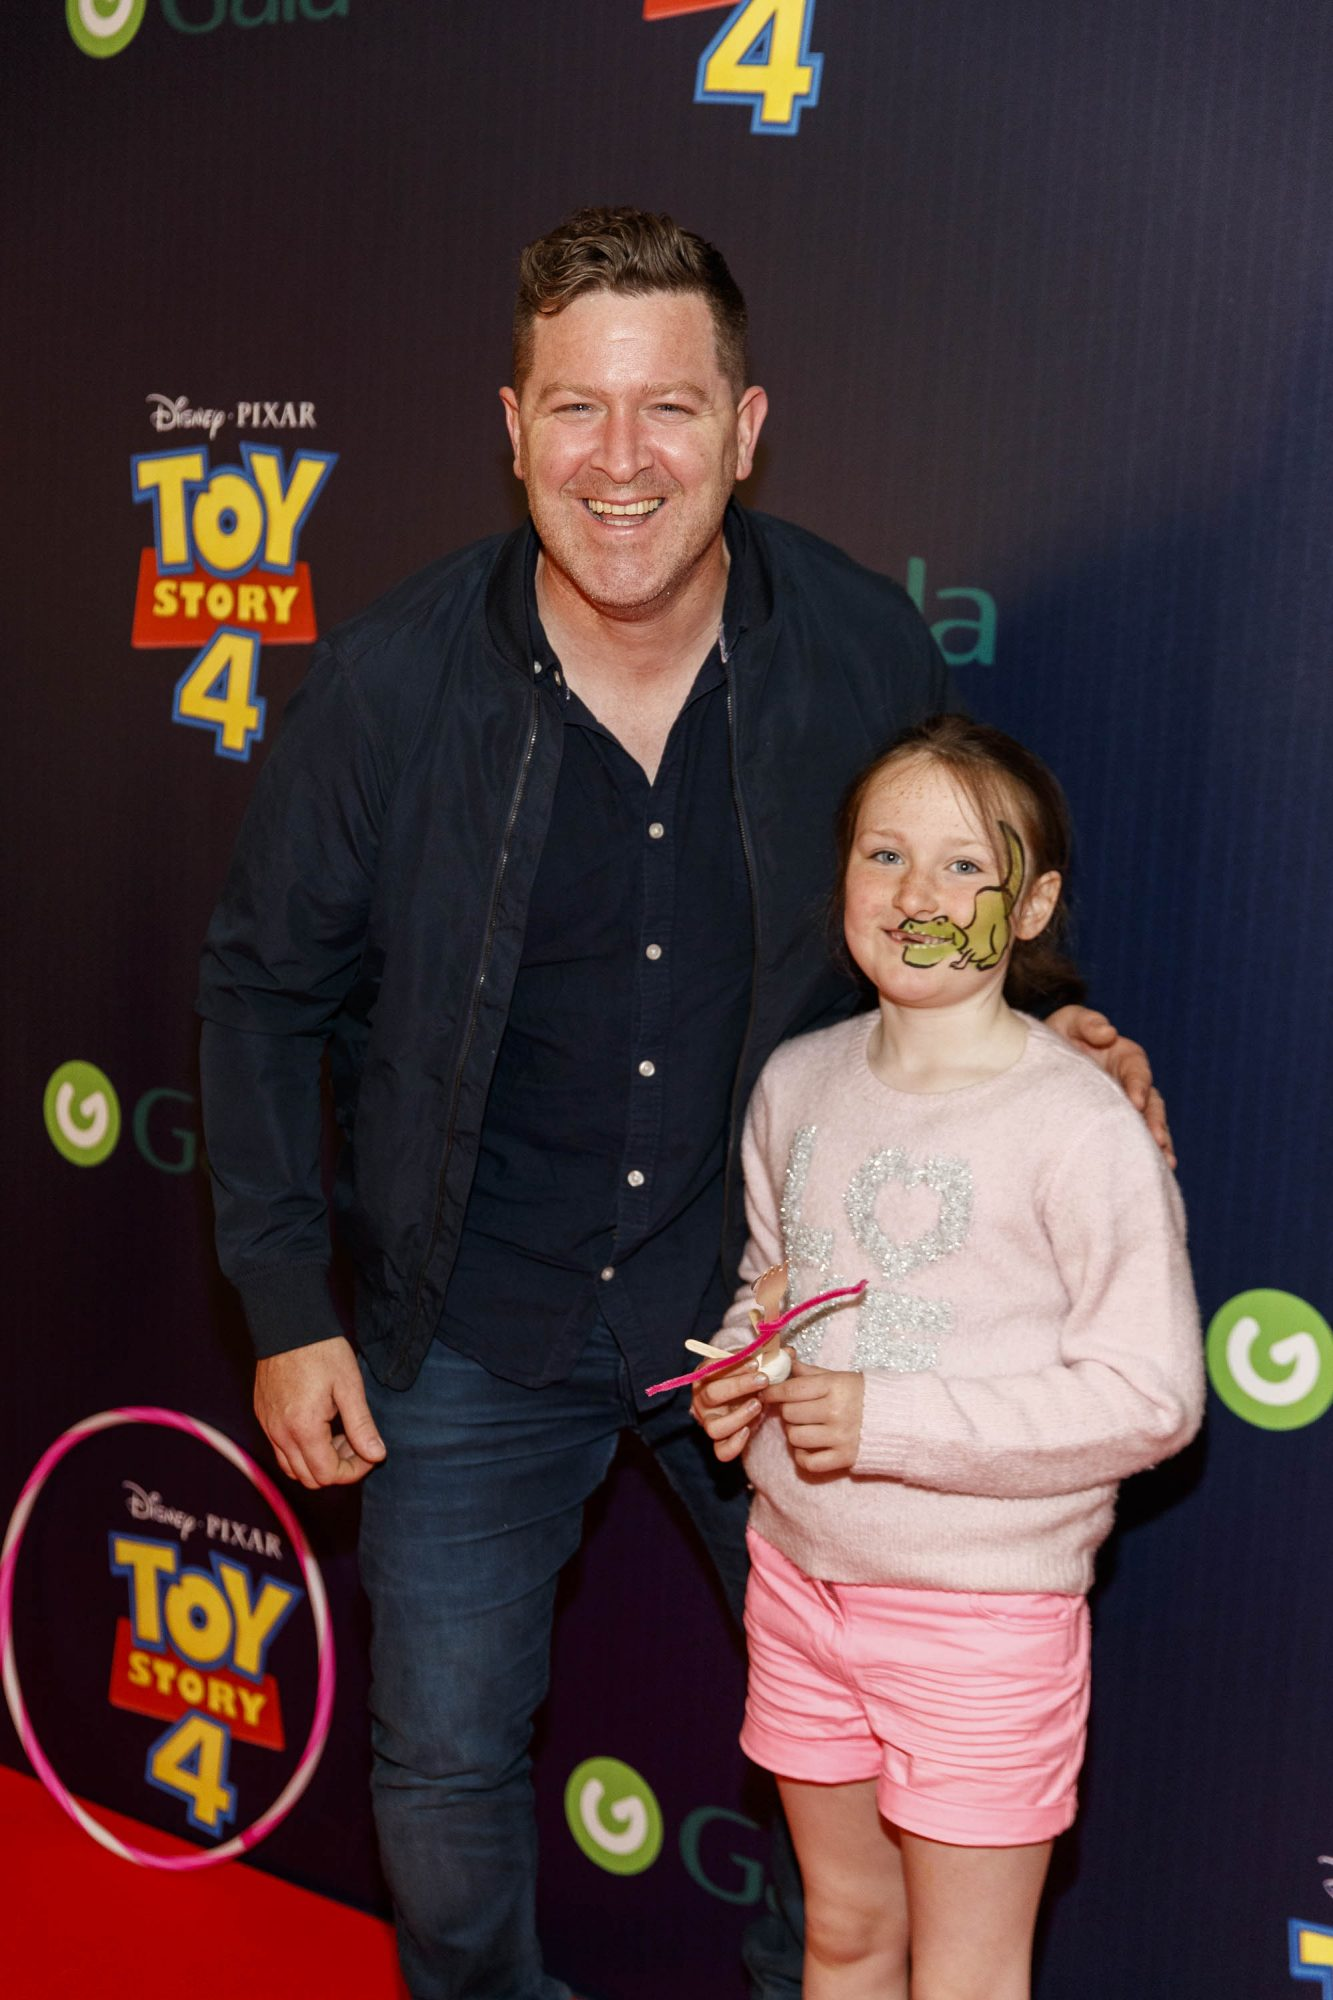 Maclean Burke and daughter Bow Belle pictured at the special event screening of Disney Pixar's TOY STORY 4 in the Light House Cinema Dublin. Picture: Andres Poveda